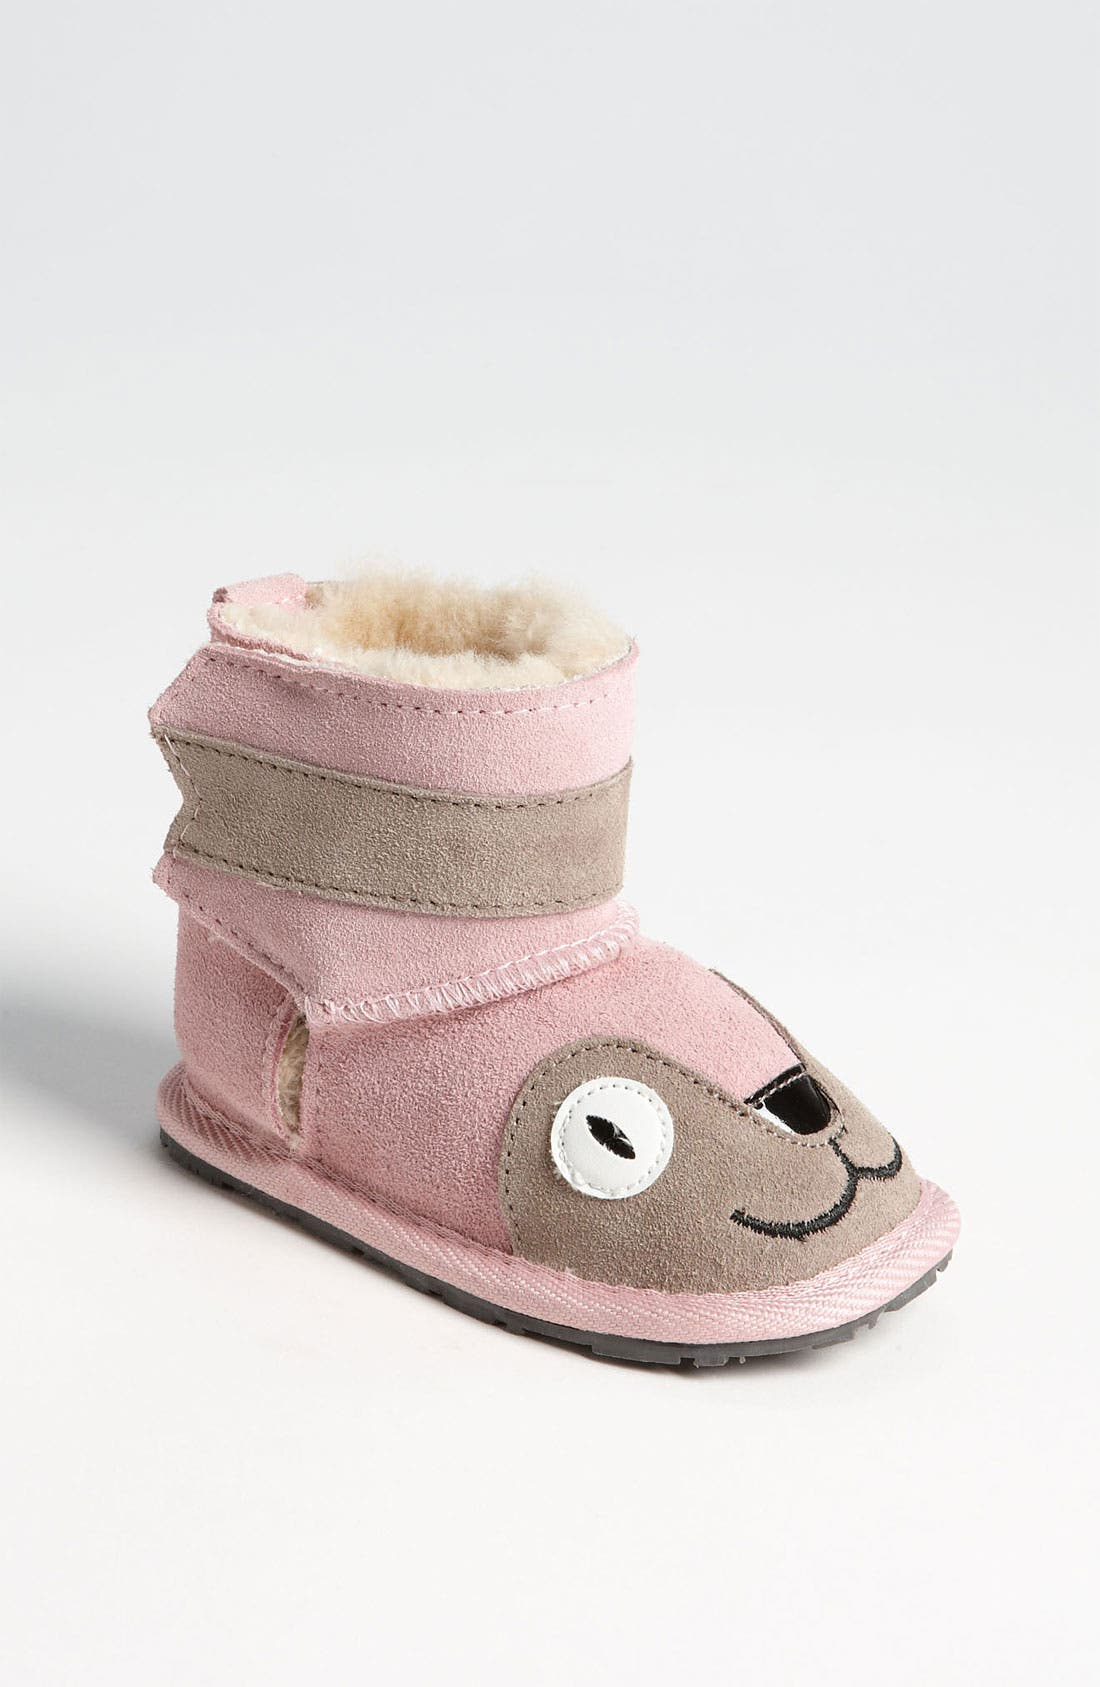 Main Image - EMU Australia 'Little Creatures - Kitty' Boot (Baby & Walker)